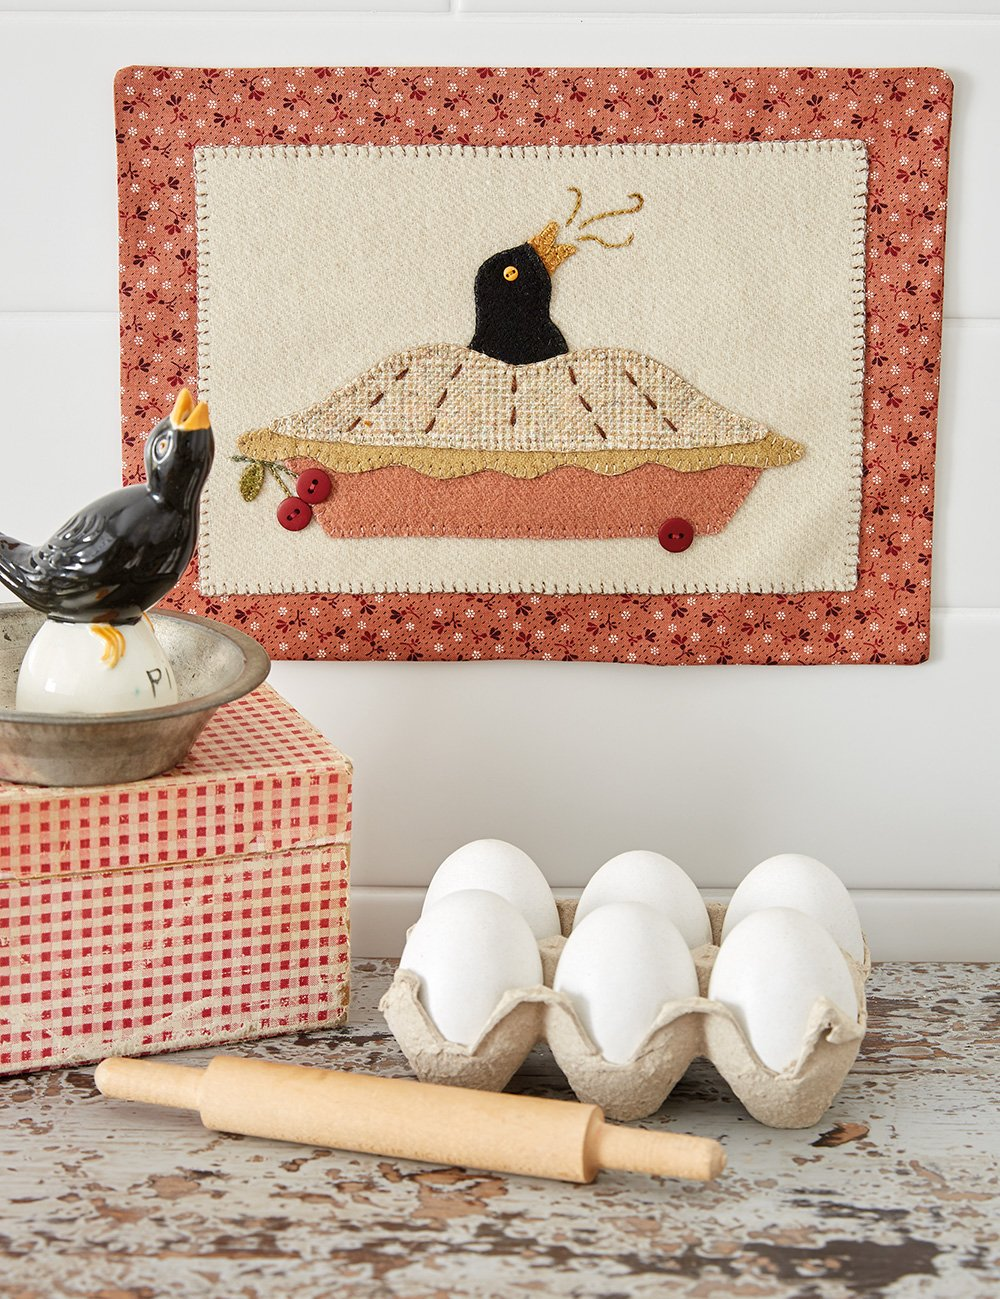 Buttermilk Basin's Vintage Vibe * Pie Bird Party Wall Hanging Kit